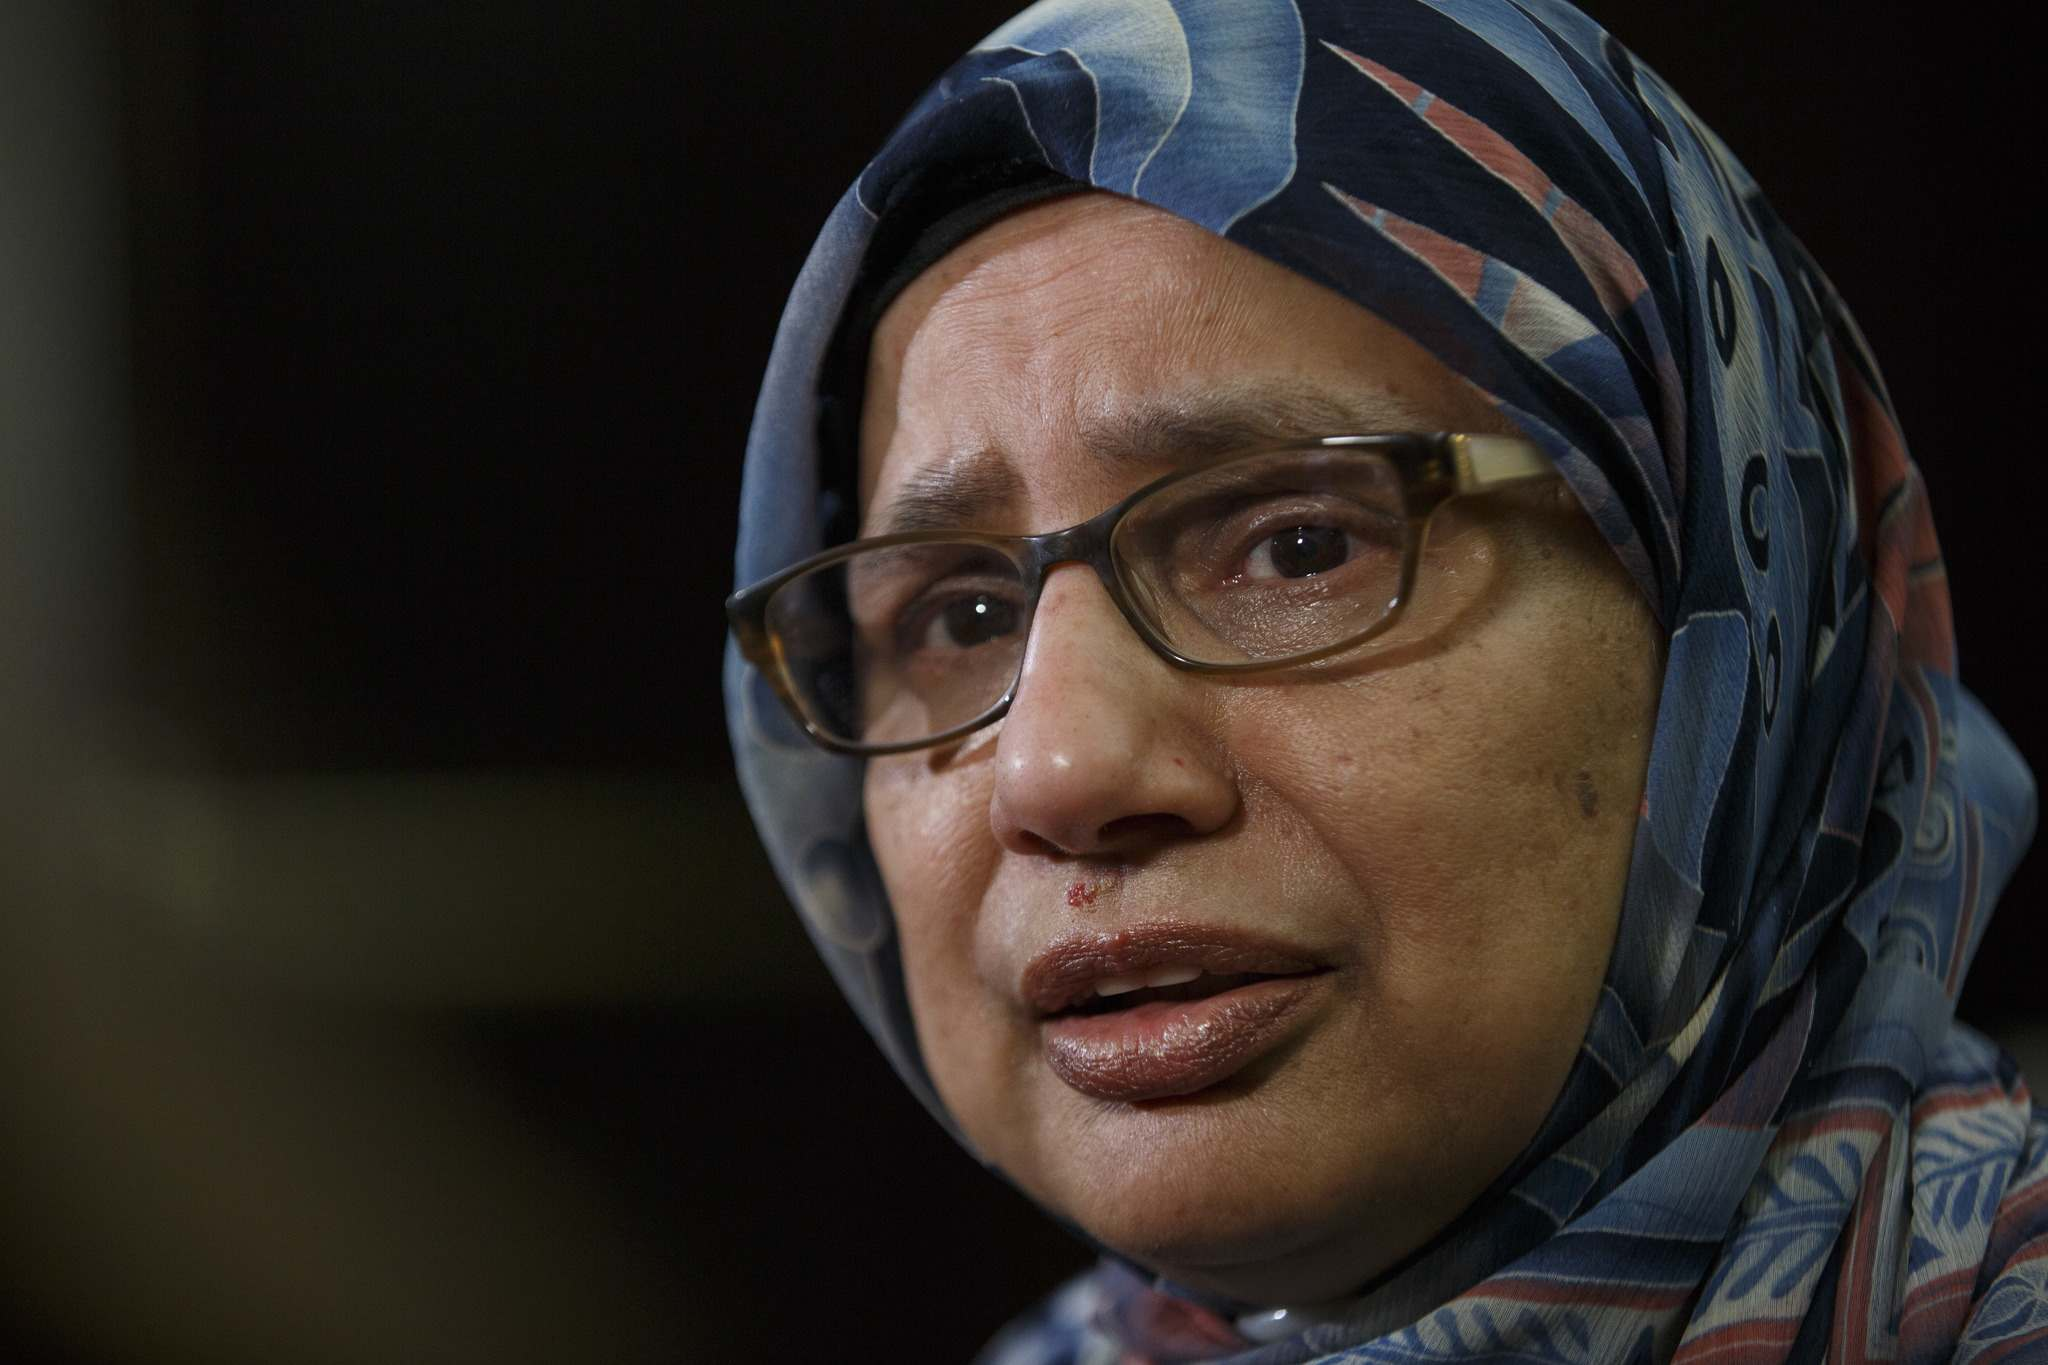 MIKE DEAL / WINNIPEG FREE PRESS FILES</p><p>Islamic Social Services Association founder Shahina Siddiqui will receive an honorary degree from the University of Manitoba on Tuesday. </p></p>